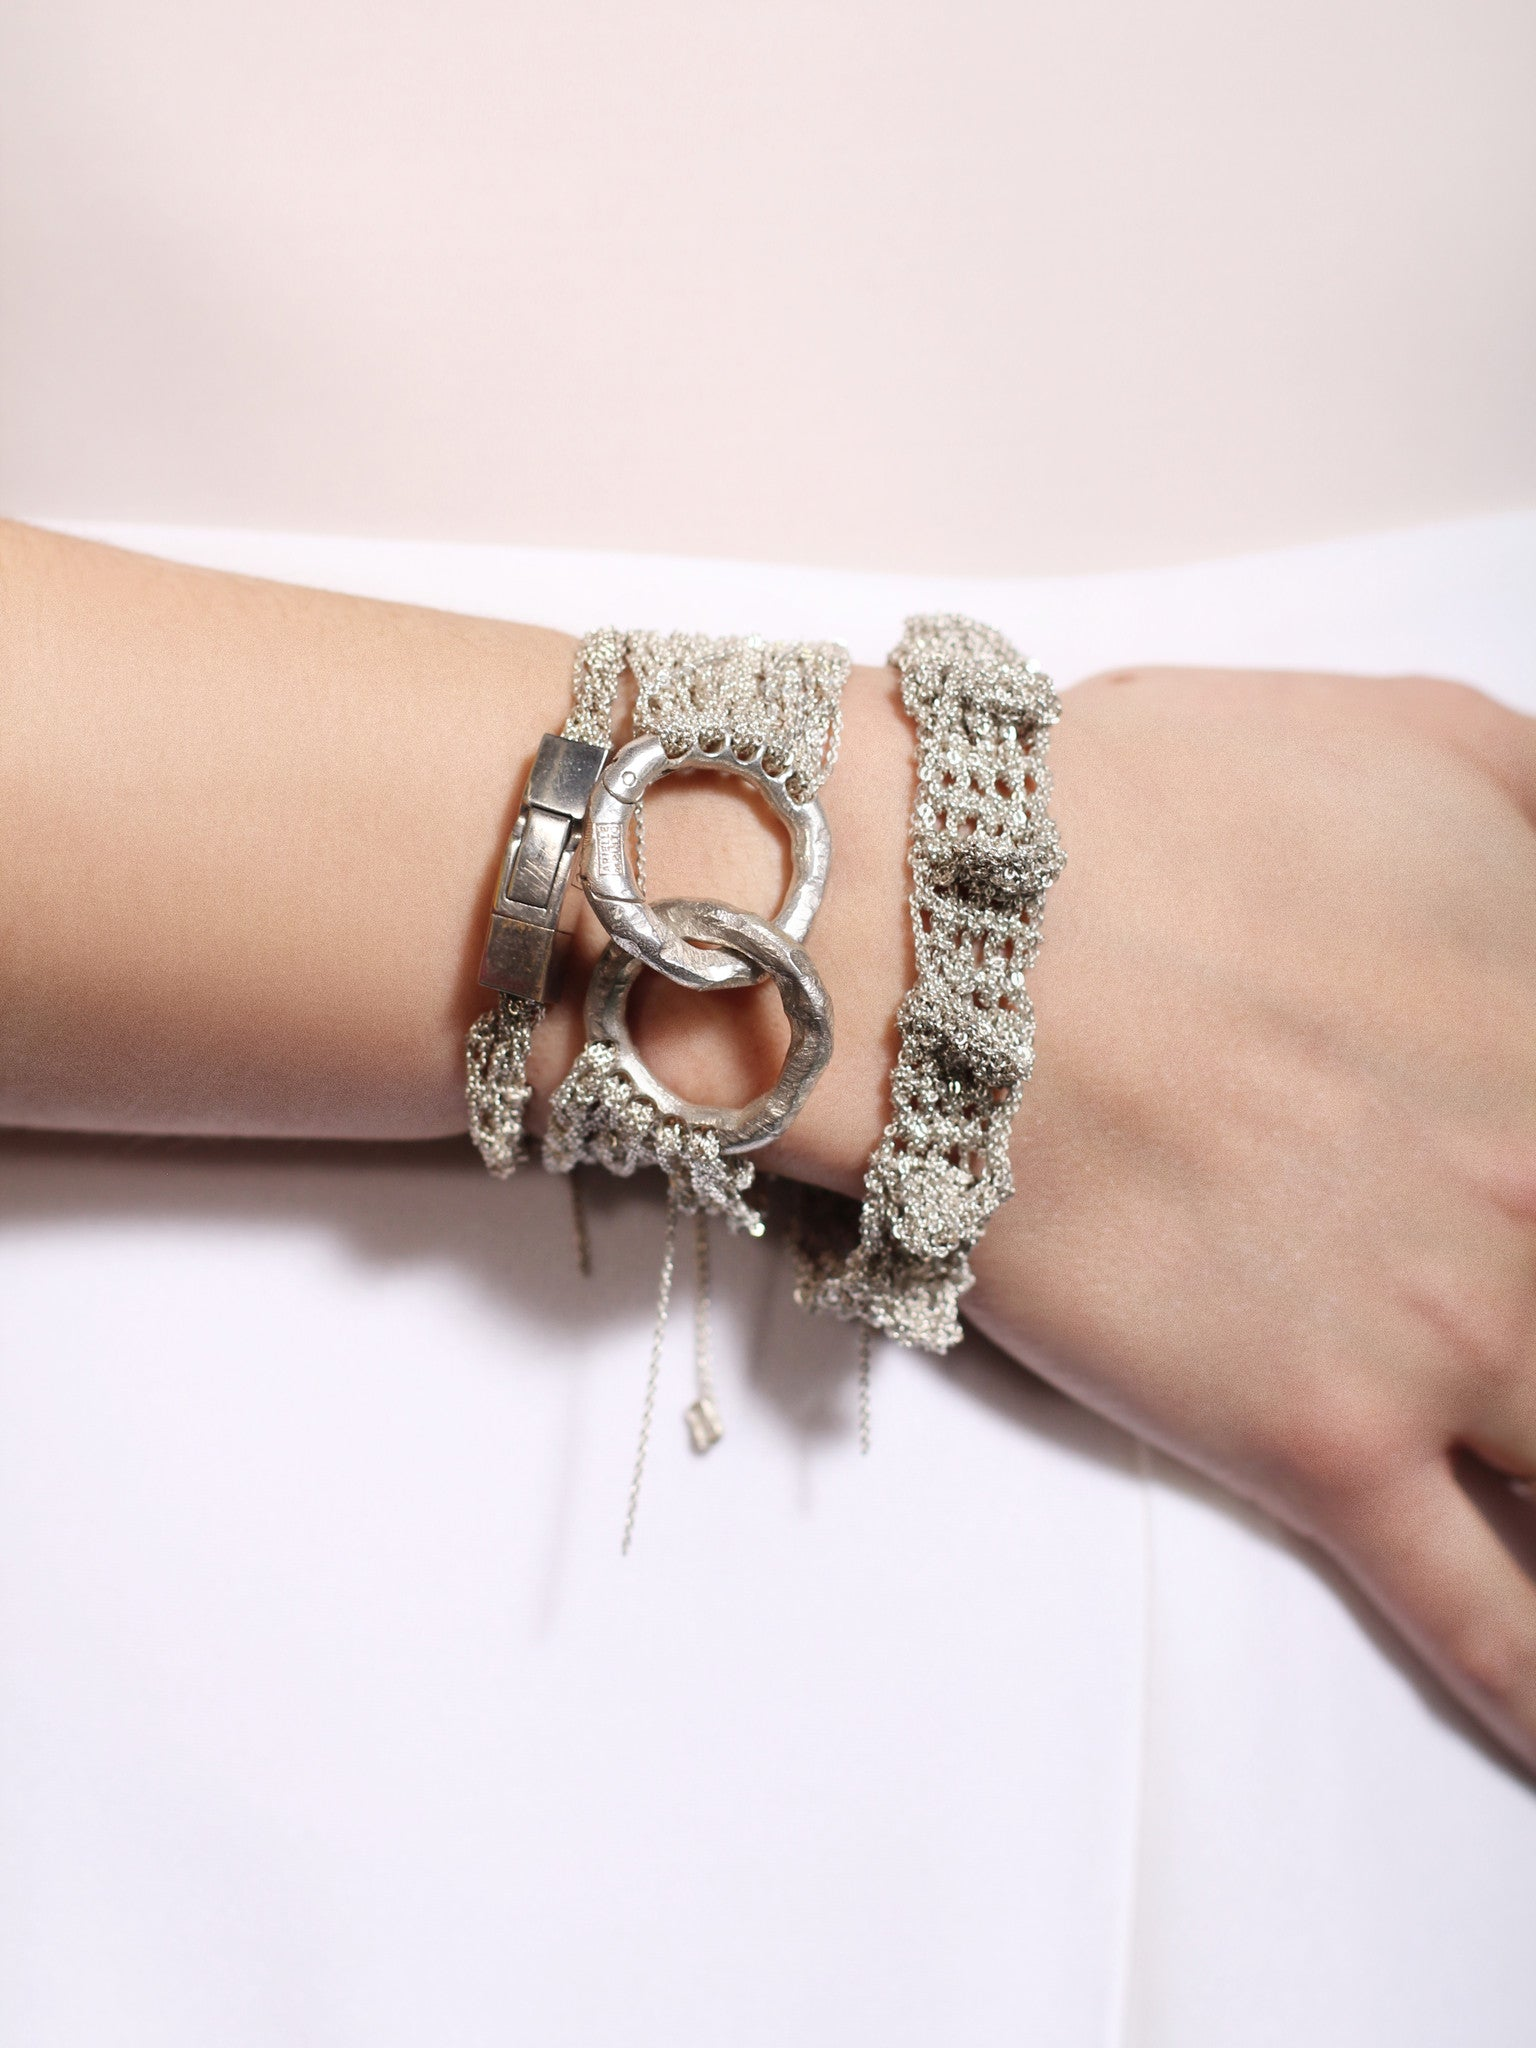 Multi Tress Bracelet w/ Ring Clasp in Silver